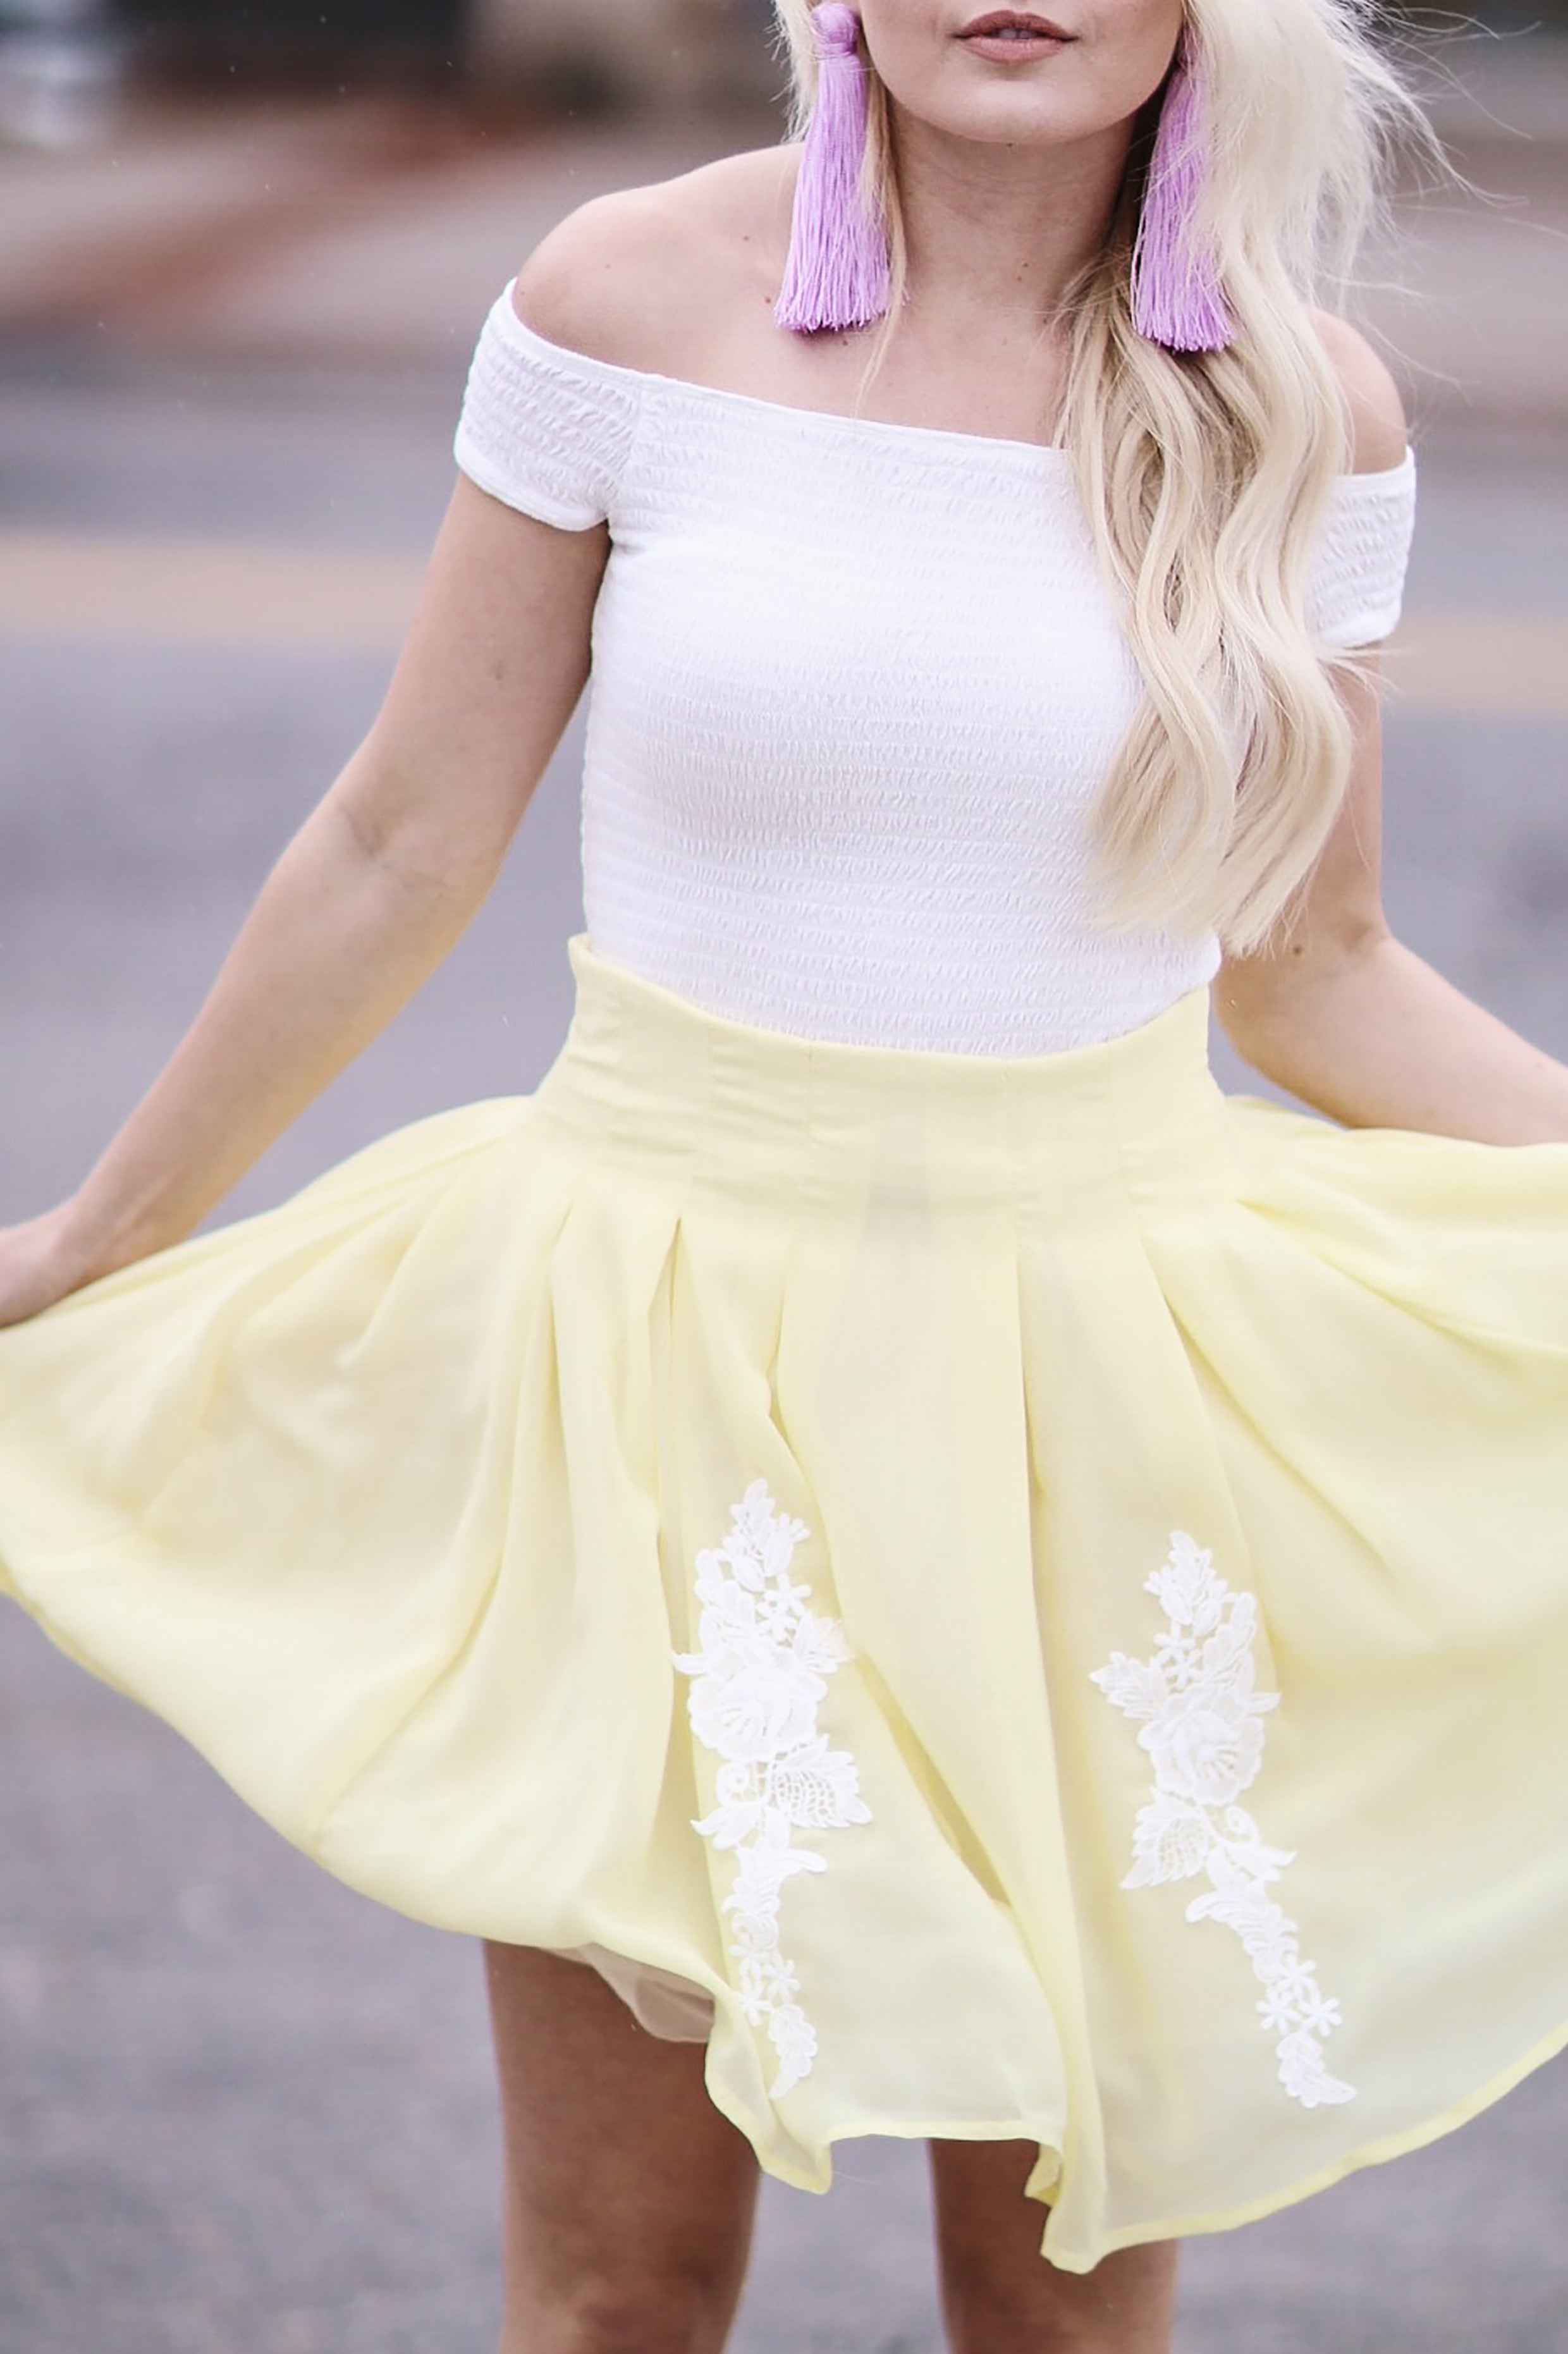 Alena Gidenko from modaprints.com styles a yellow lace skirt with an off shoulder white top for Spring and Summer